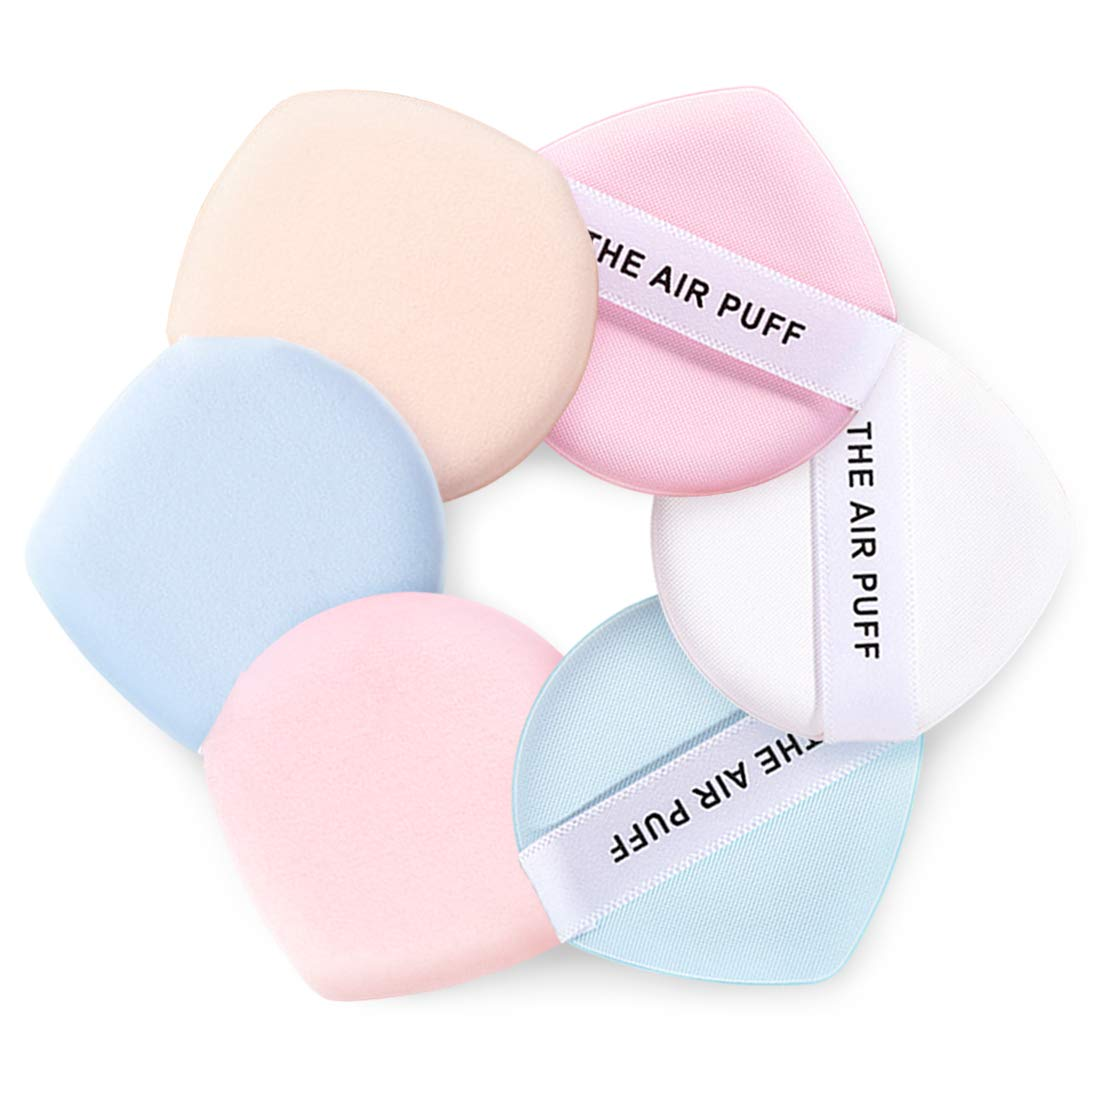 Kalevel 6pcs Air Cushion Puff Foundation Sponge Water Drop Face Powder Puffs Latex Free Makeup Sponges 2 Inch Small Powder Cosmetic Puff Pad BB Cream Sponge for Dry & Wet Use (Mixed Colors)